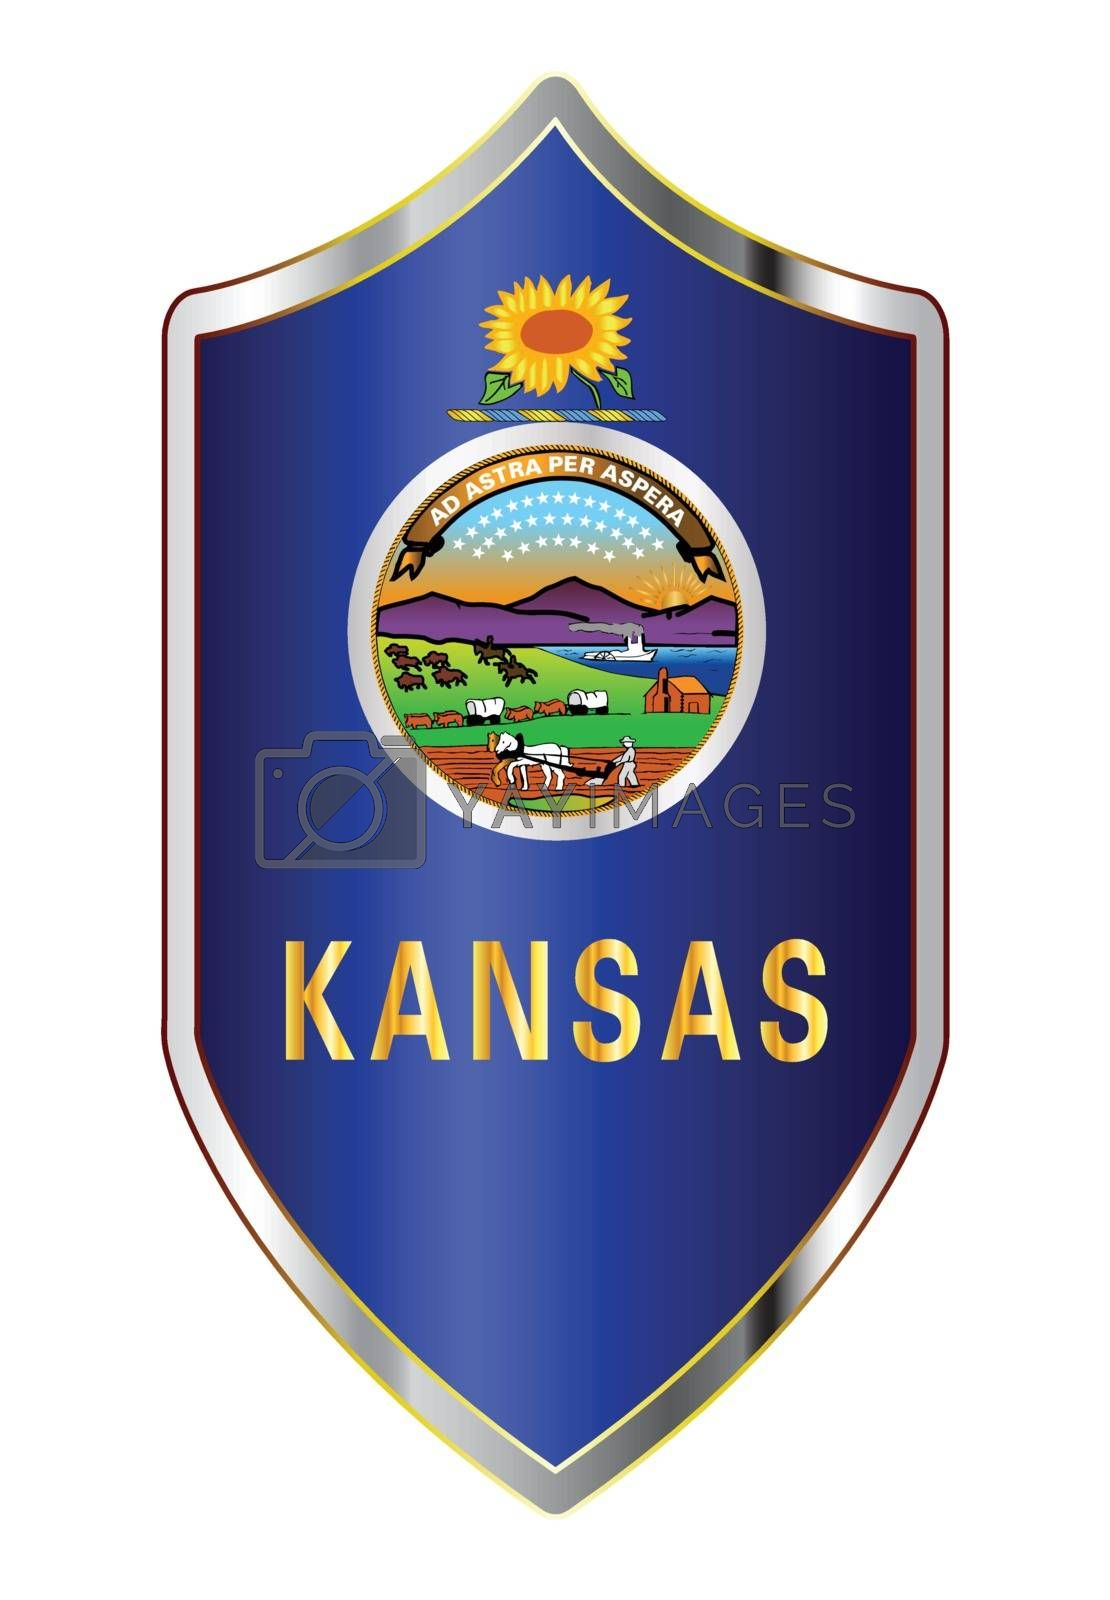 A typical crusader type shield with the state flag of Kansas all isolated on a white background